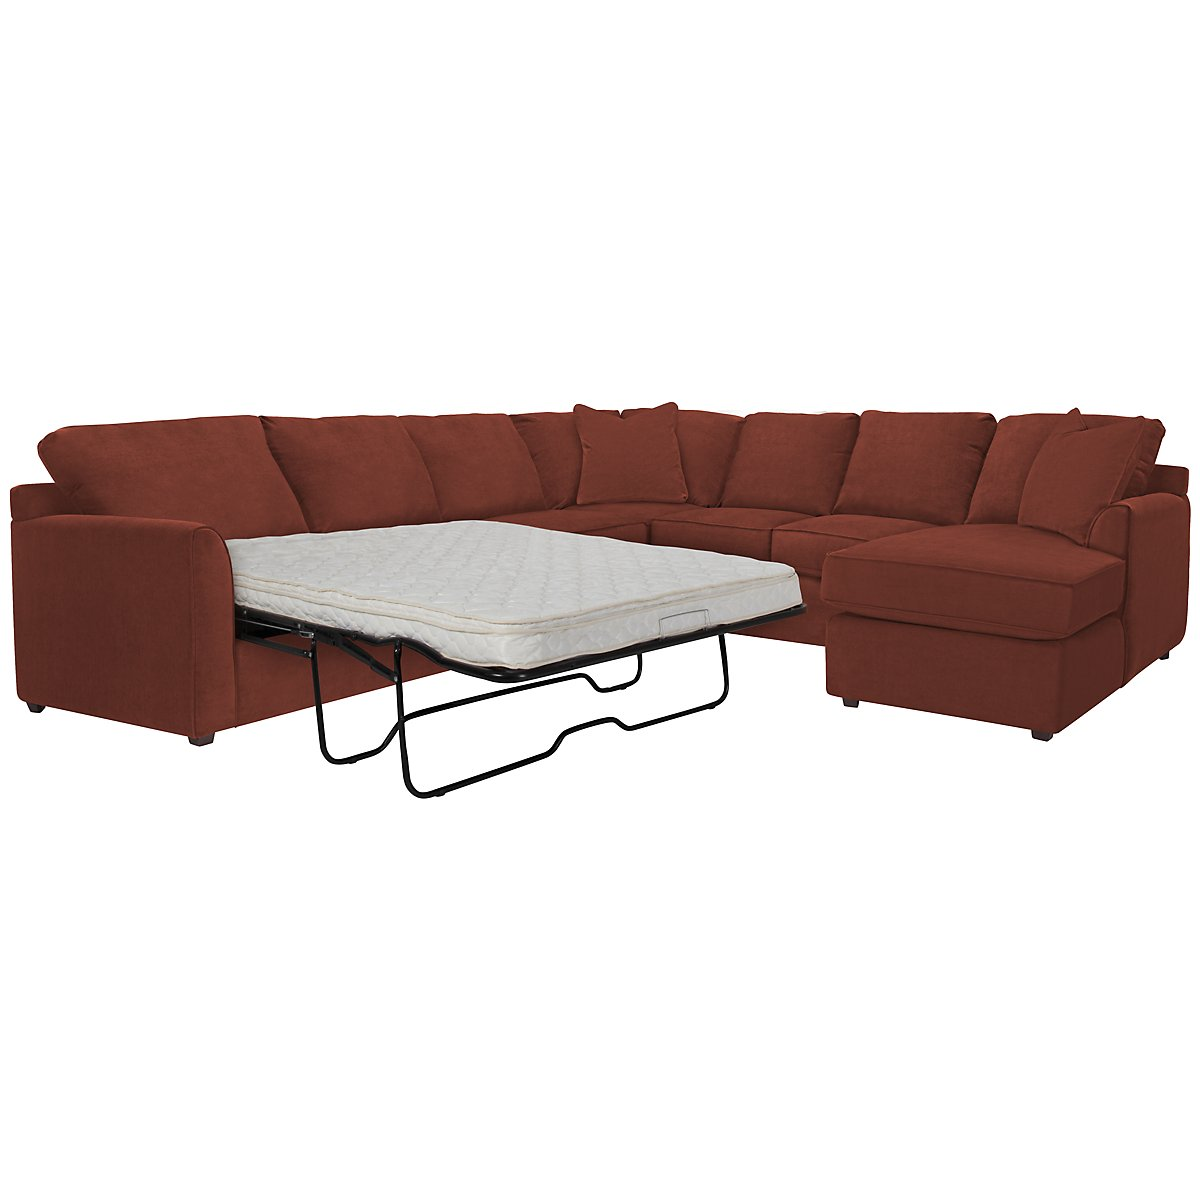 Express3 Red Microfiber Right Chaise Innerspring Sleeper Sectional